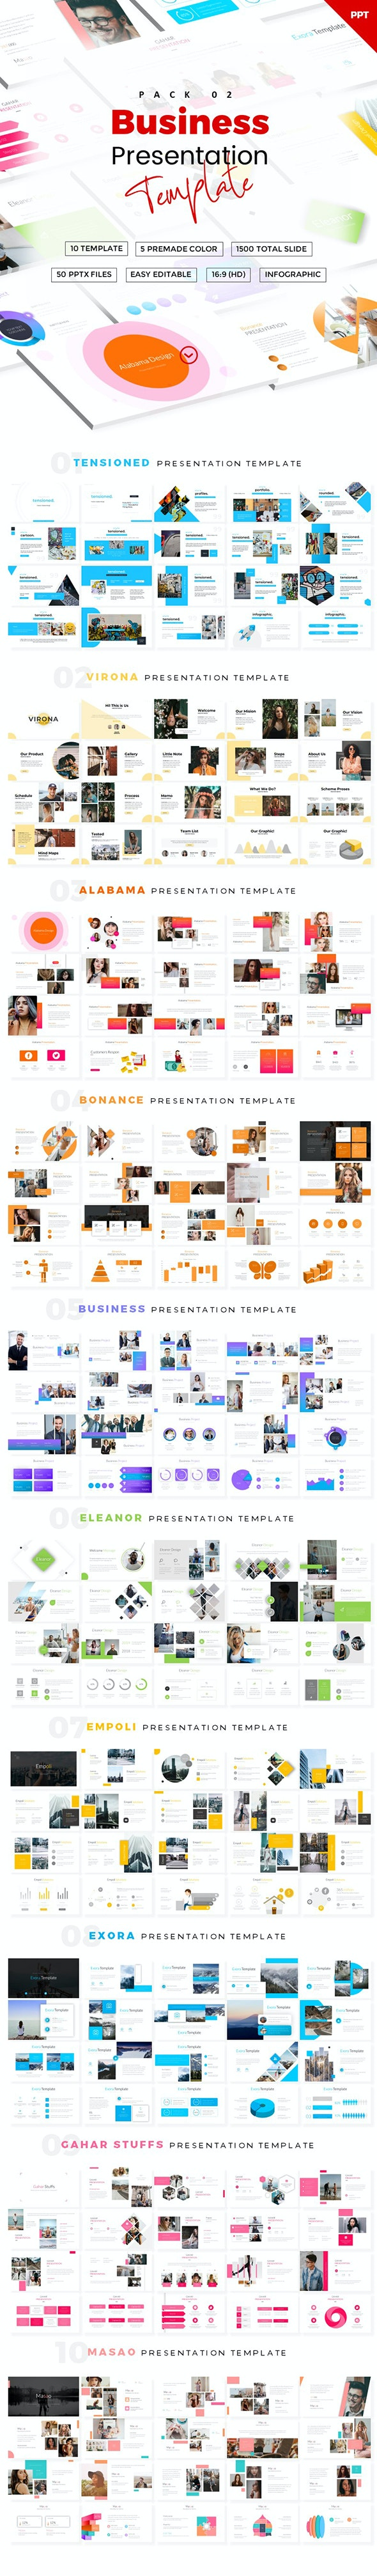 Business Powerpoint Template Pack - Business PowerPoint Templates